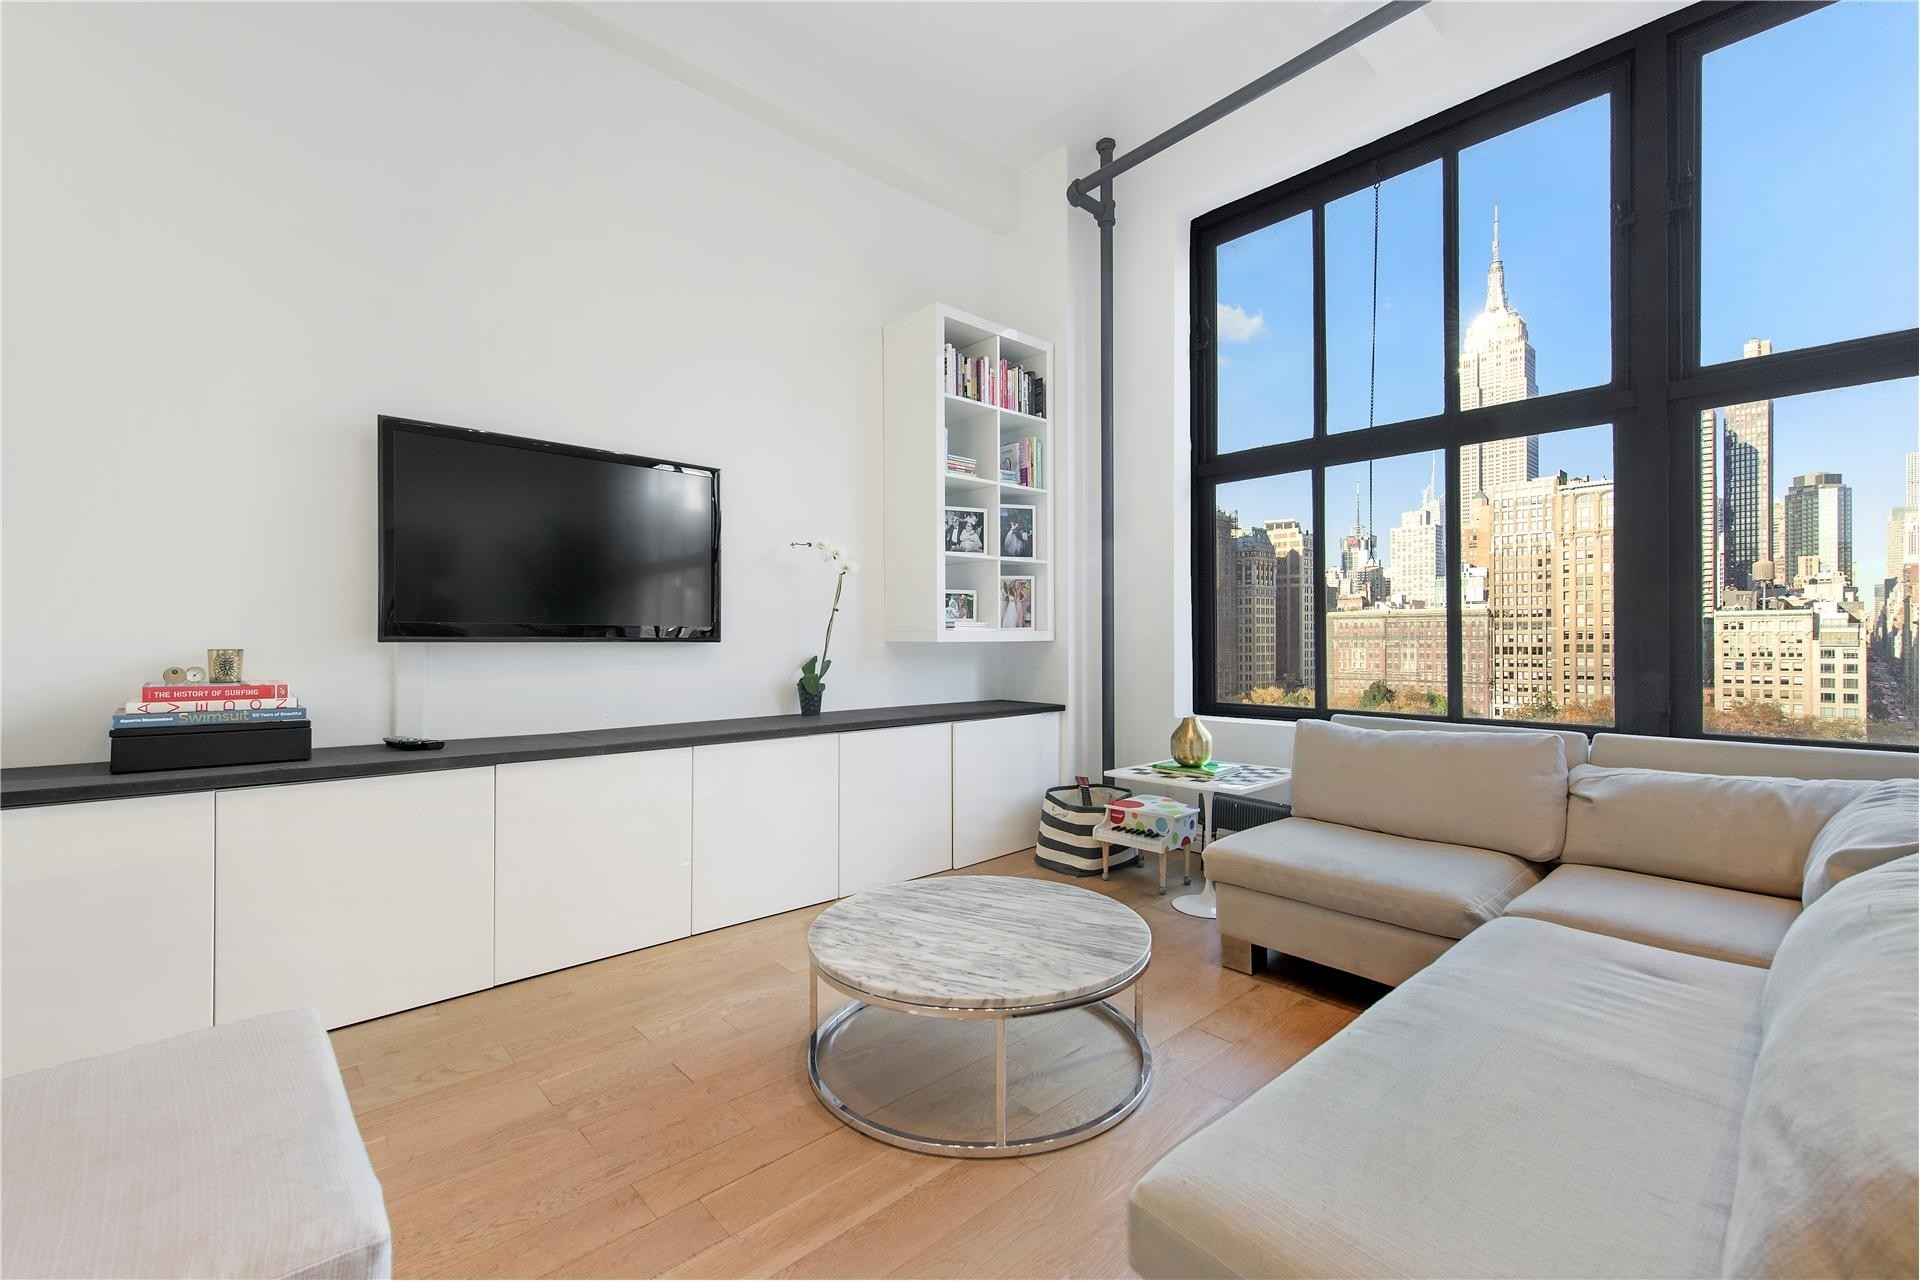 2. 13 21 E 22 St Resid. Corp建於21 East 22nd St, Flatiron District, 纽约, NY